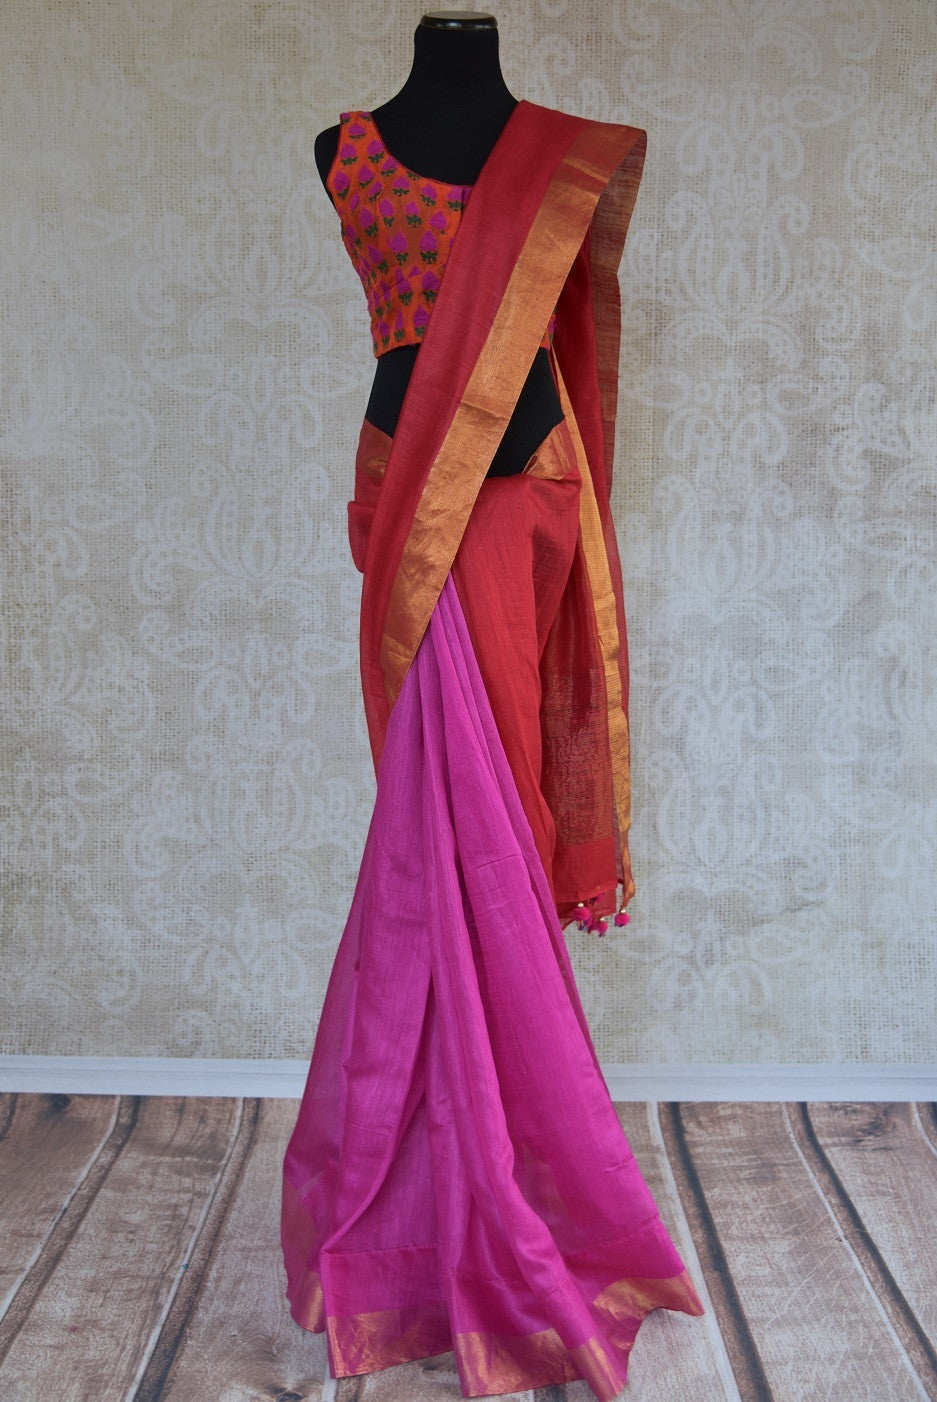 90C275 Red and pink saree online at Pure Elegance with a soft gold border. The plain tussar saree is a versatile Indian ethnic outfit, great for festive occasions and pujas.